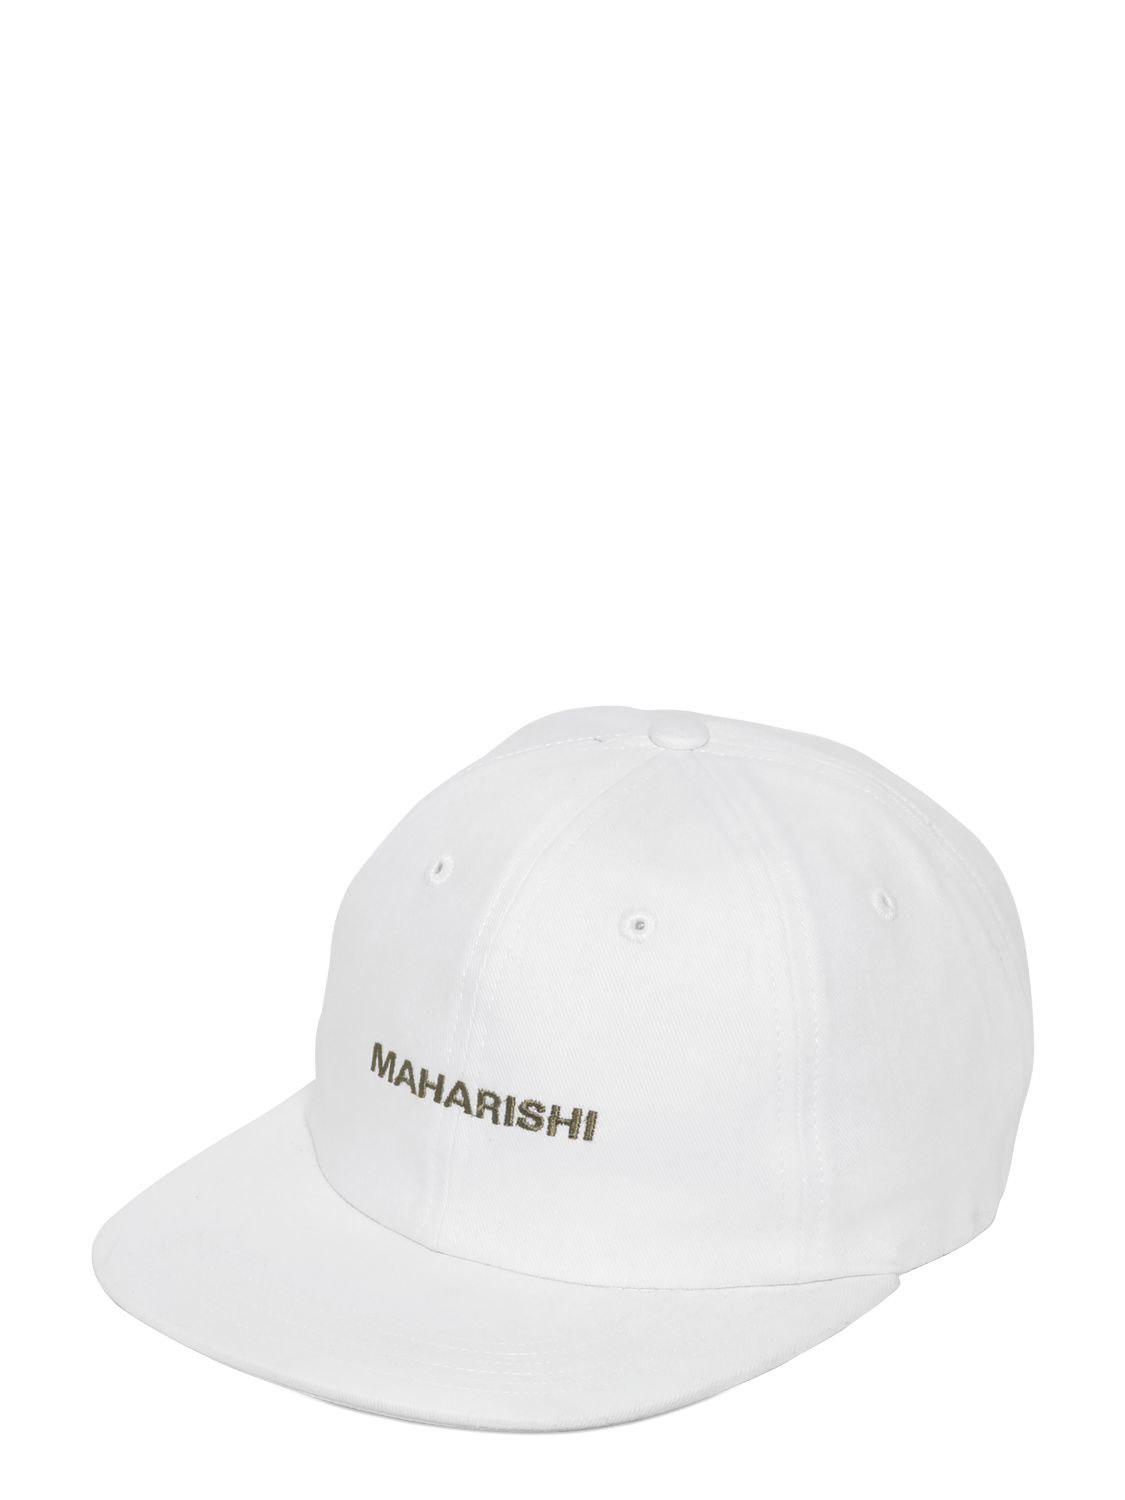 Maharishi Logo Embroidered Canvas Baseball Hat in White for Men - Lyst 65fdc9af02f5